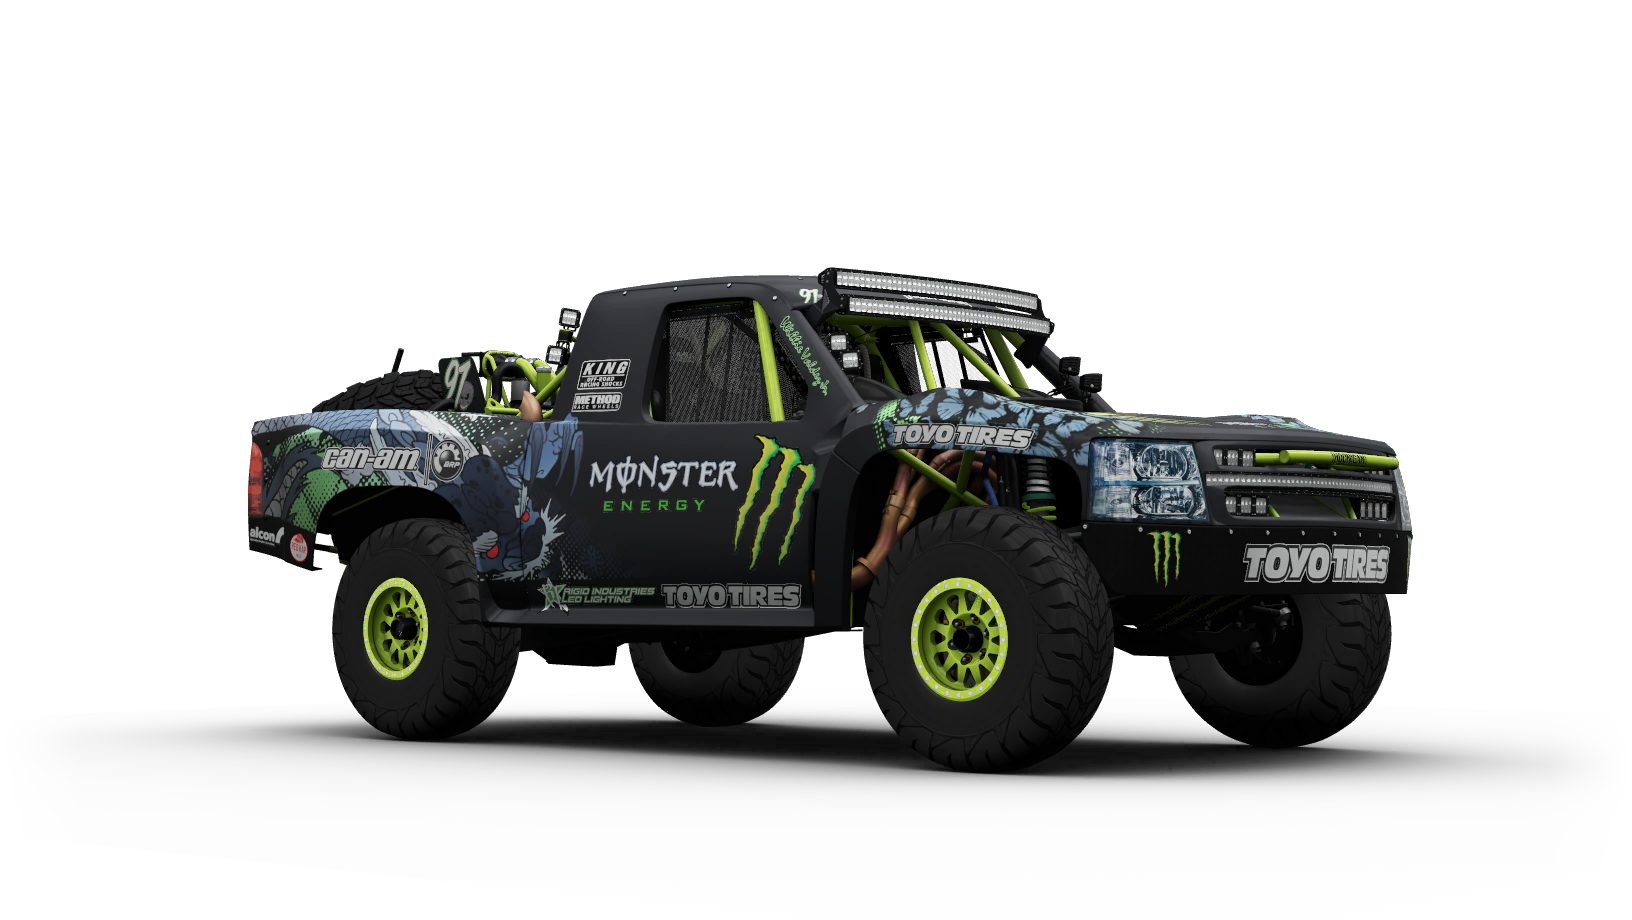 Baldwin Motorsports 97 Monster Energy Trophy Truck